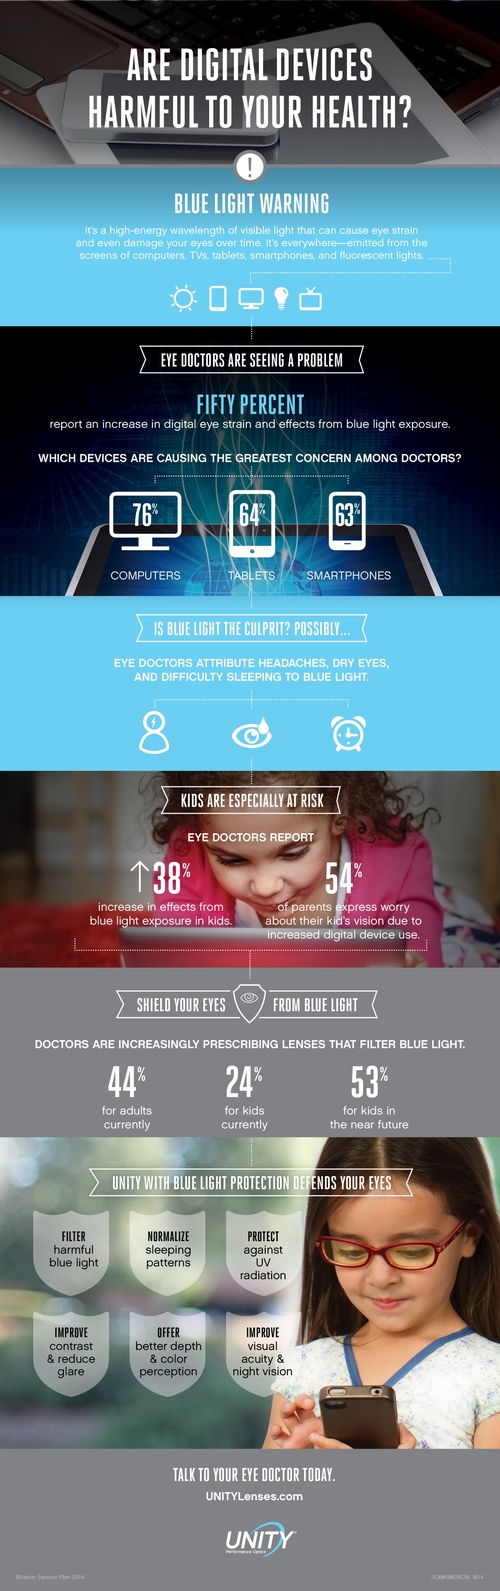 2014-07-23-20140710BlueLightInfographic_HighResFINAL.jpg